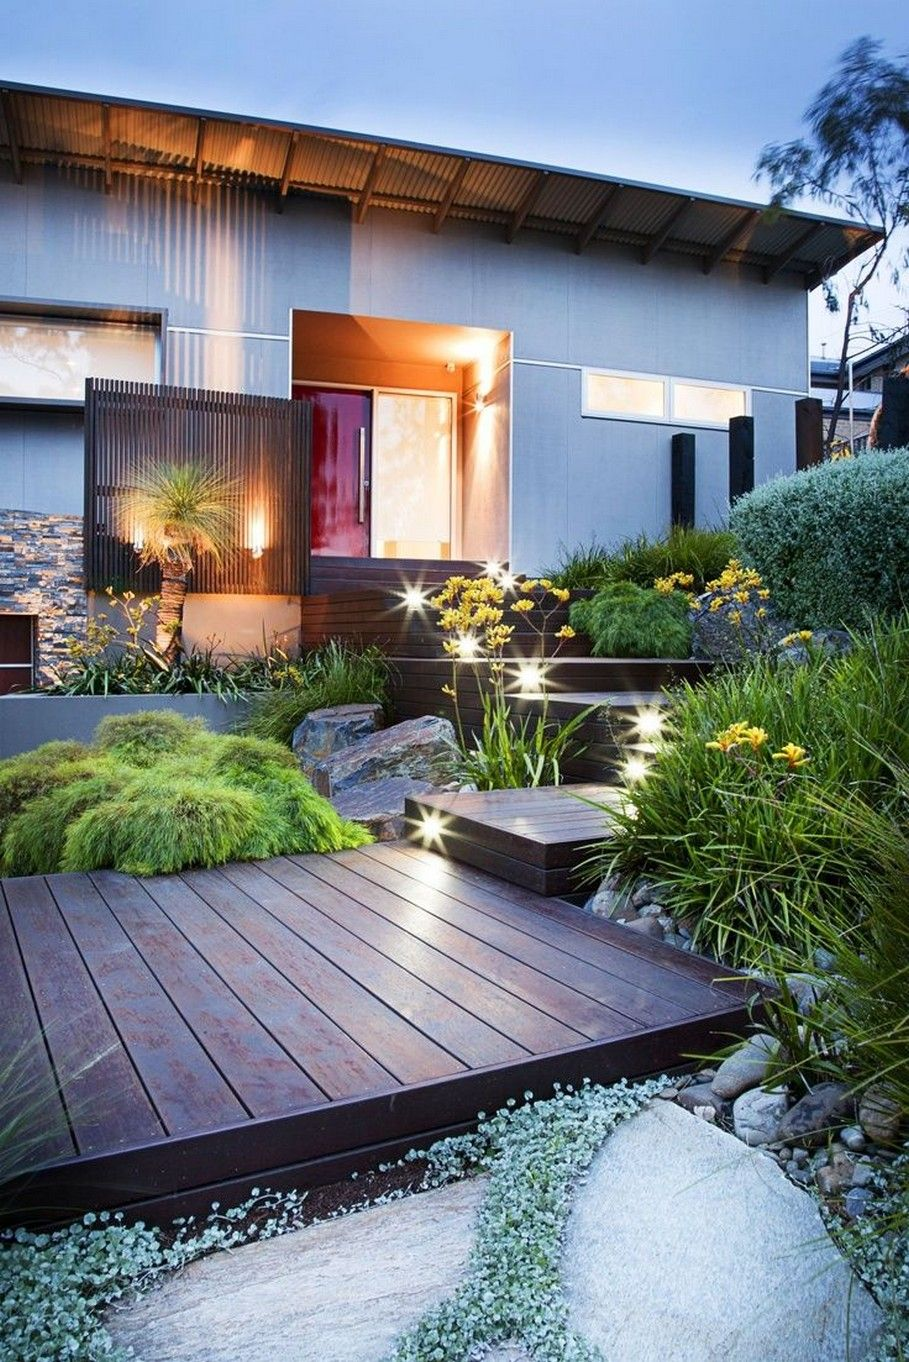 21 Best Front Yard Landscaping Ideas Designs For 2020 Imagine And Finish It 3 Modern Landscaping Front Garden Design Front Yard Design New house backyard ideas